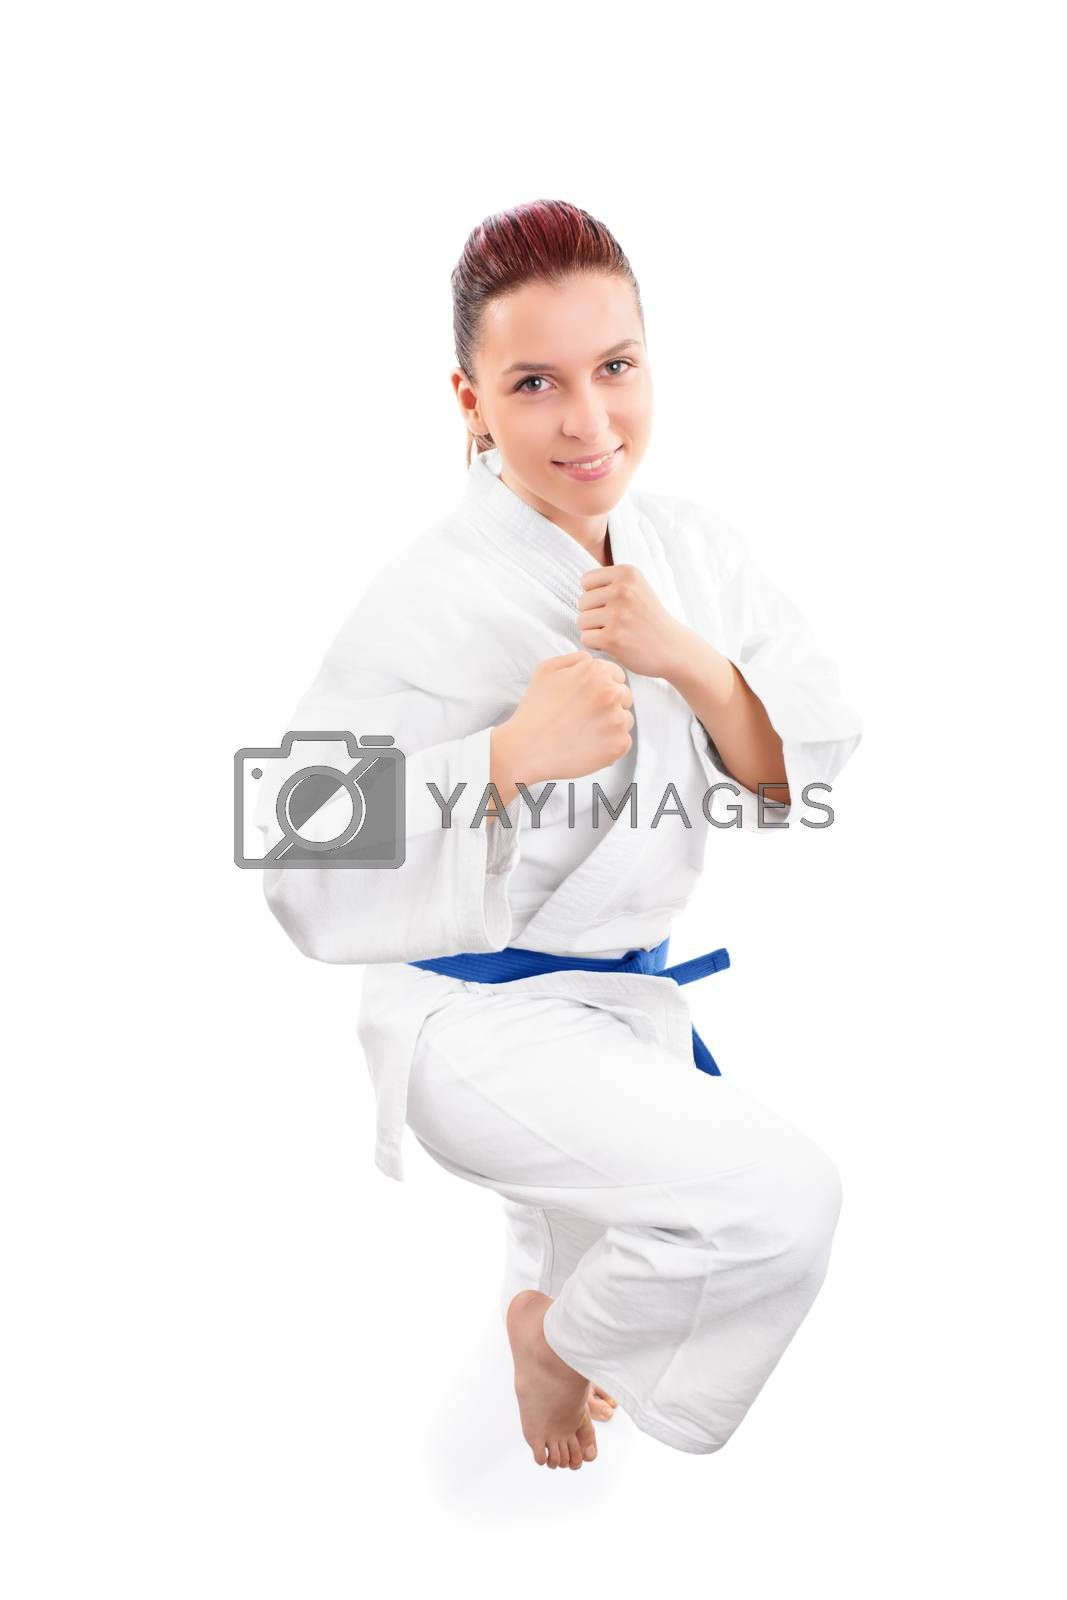 Top view of a beautiful young smiling girl in a kimono with blue belt with a raised knee preparing for a kick, isolated on white background.